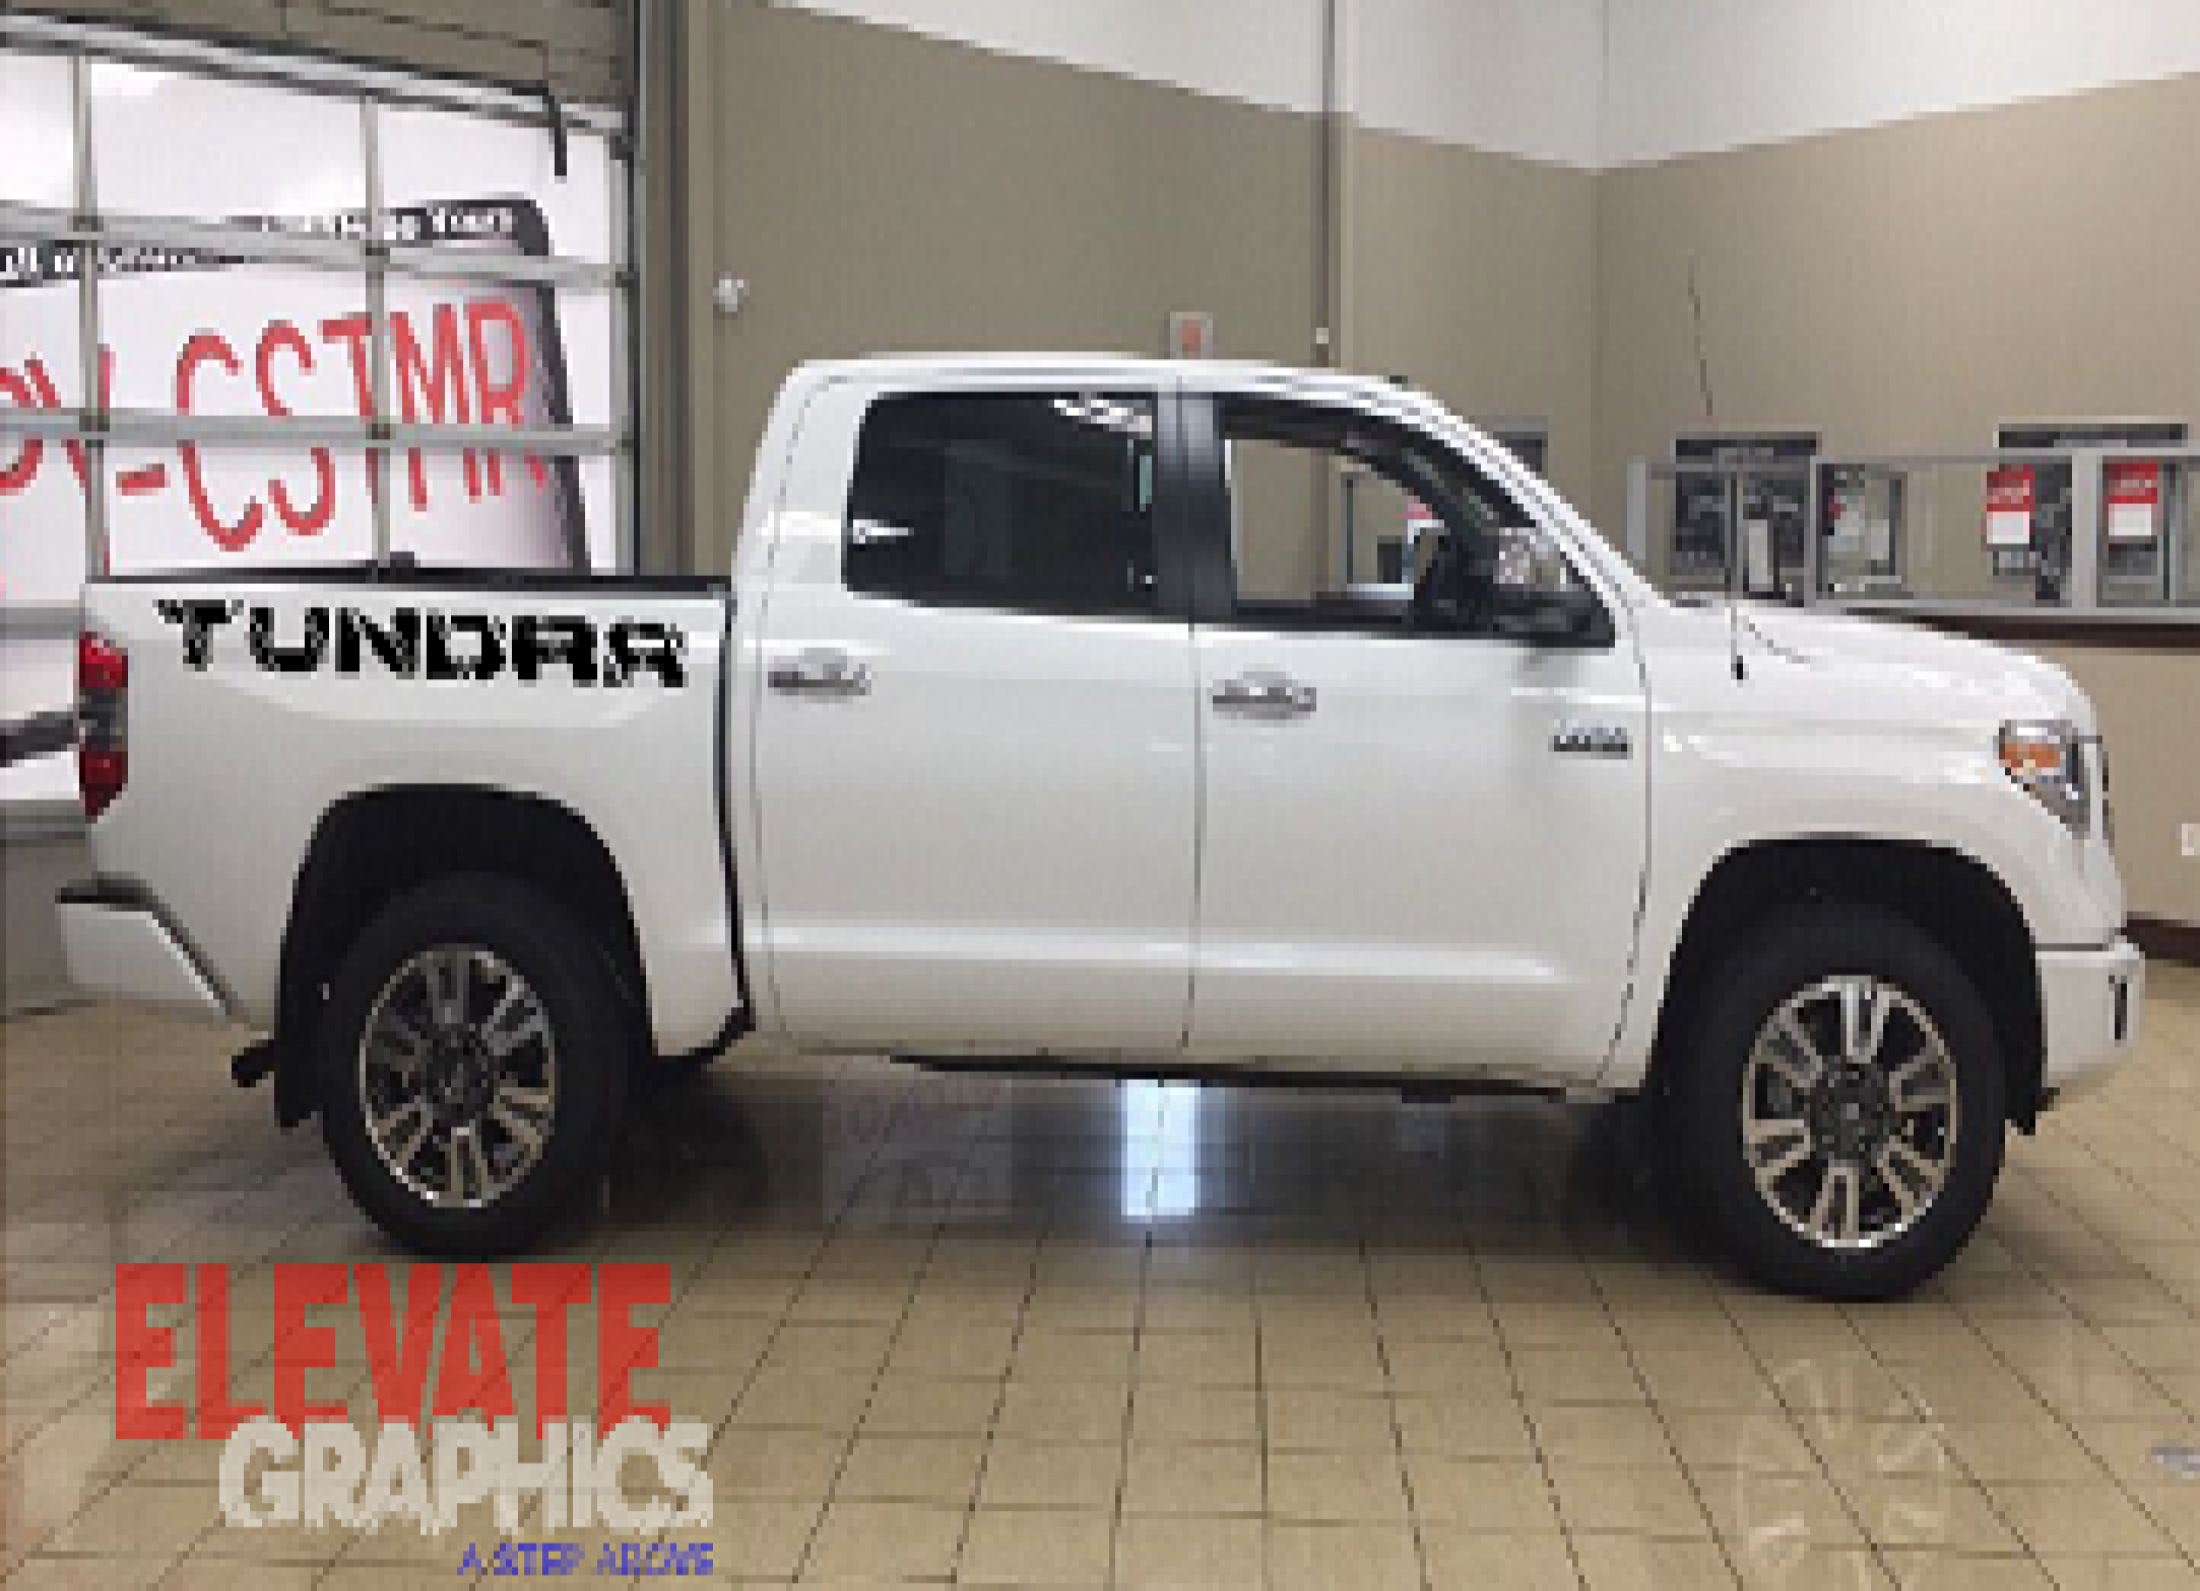 Details about 2007 2019 toyota tundra slash graphic for rocker or back bed side decal stripe